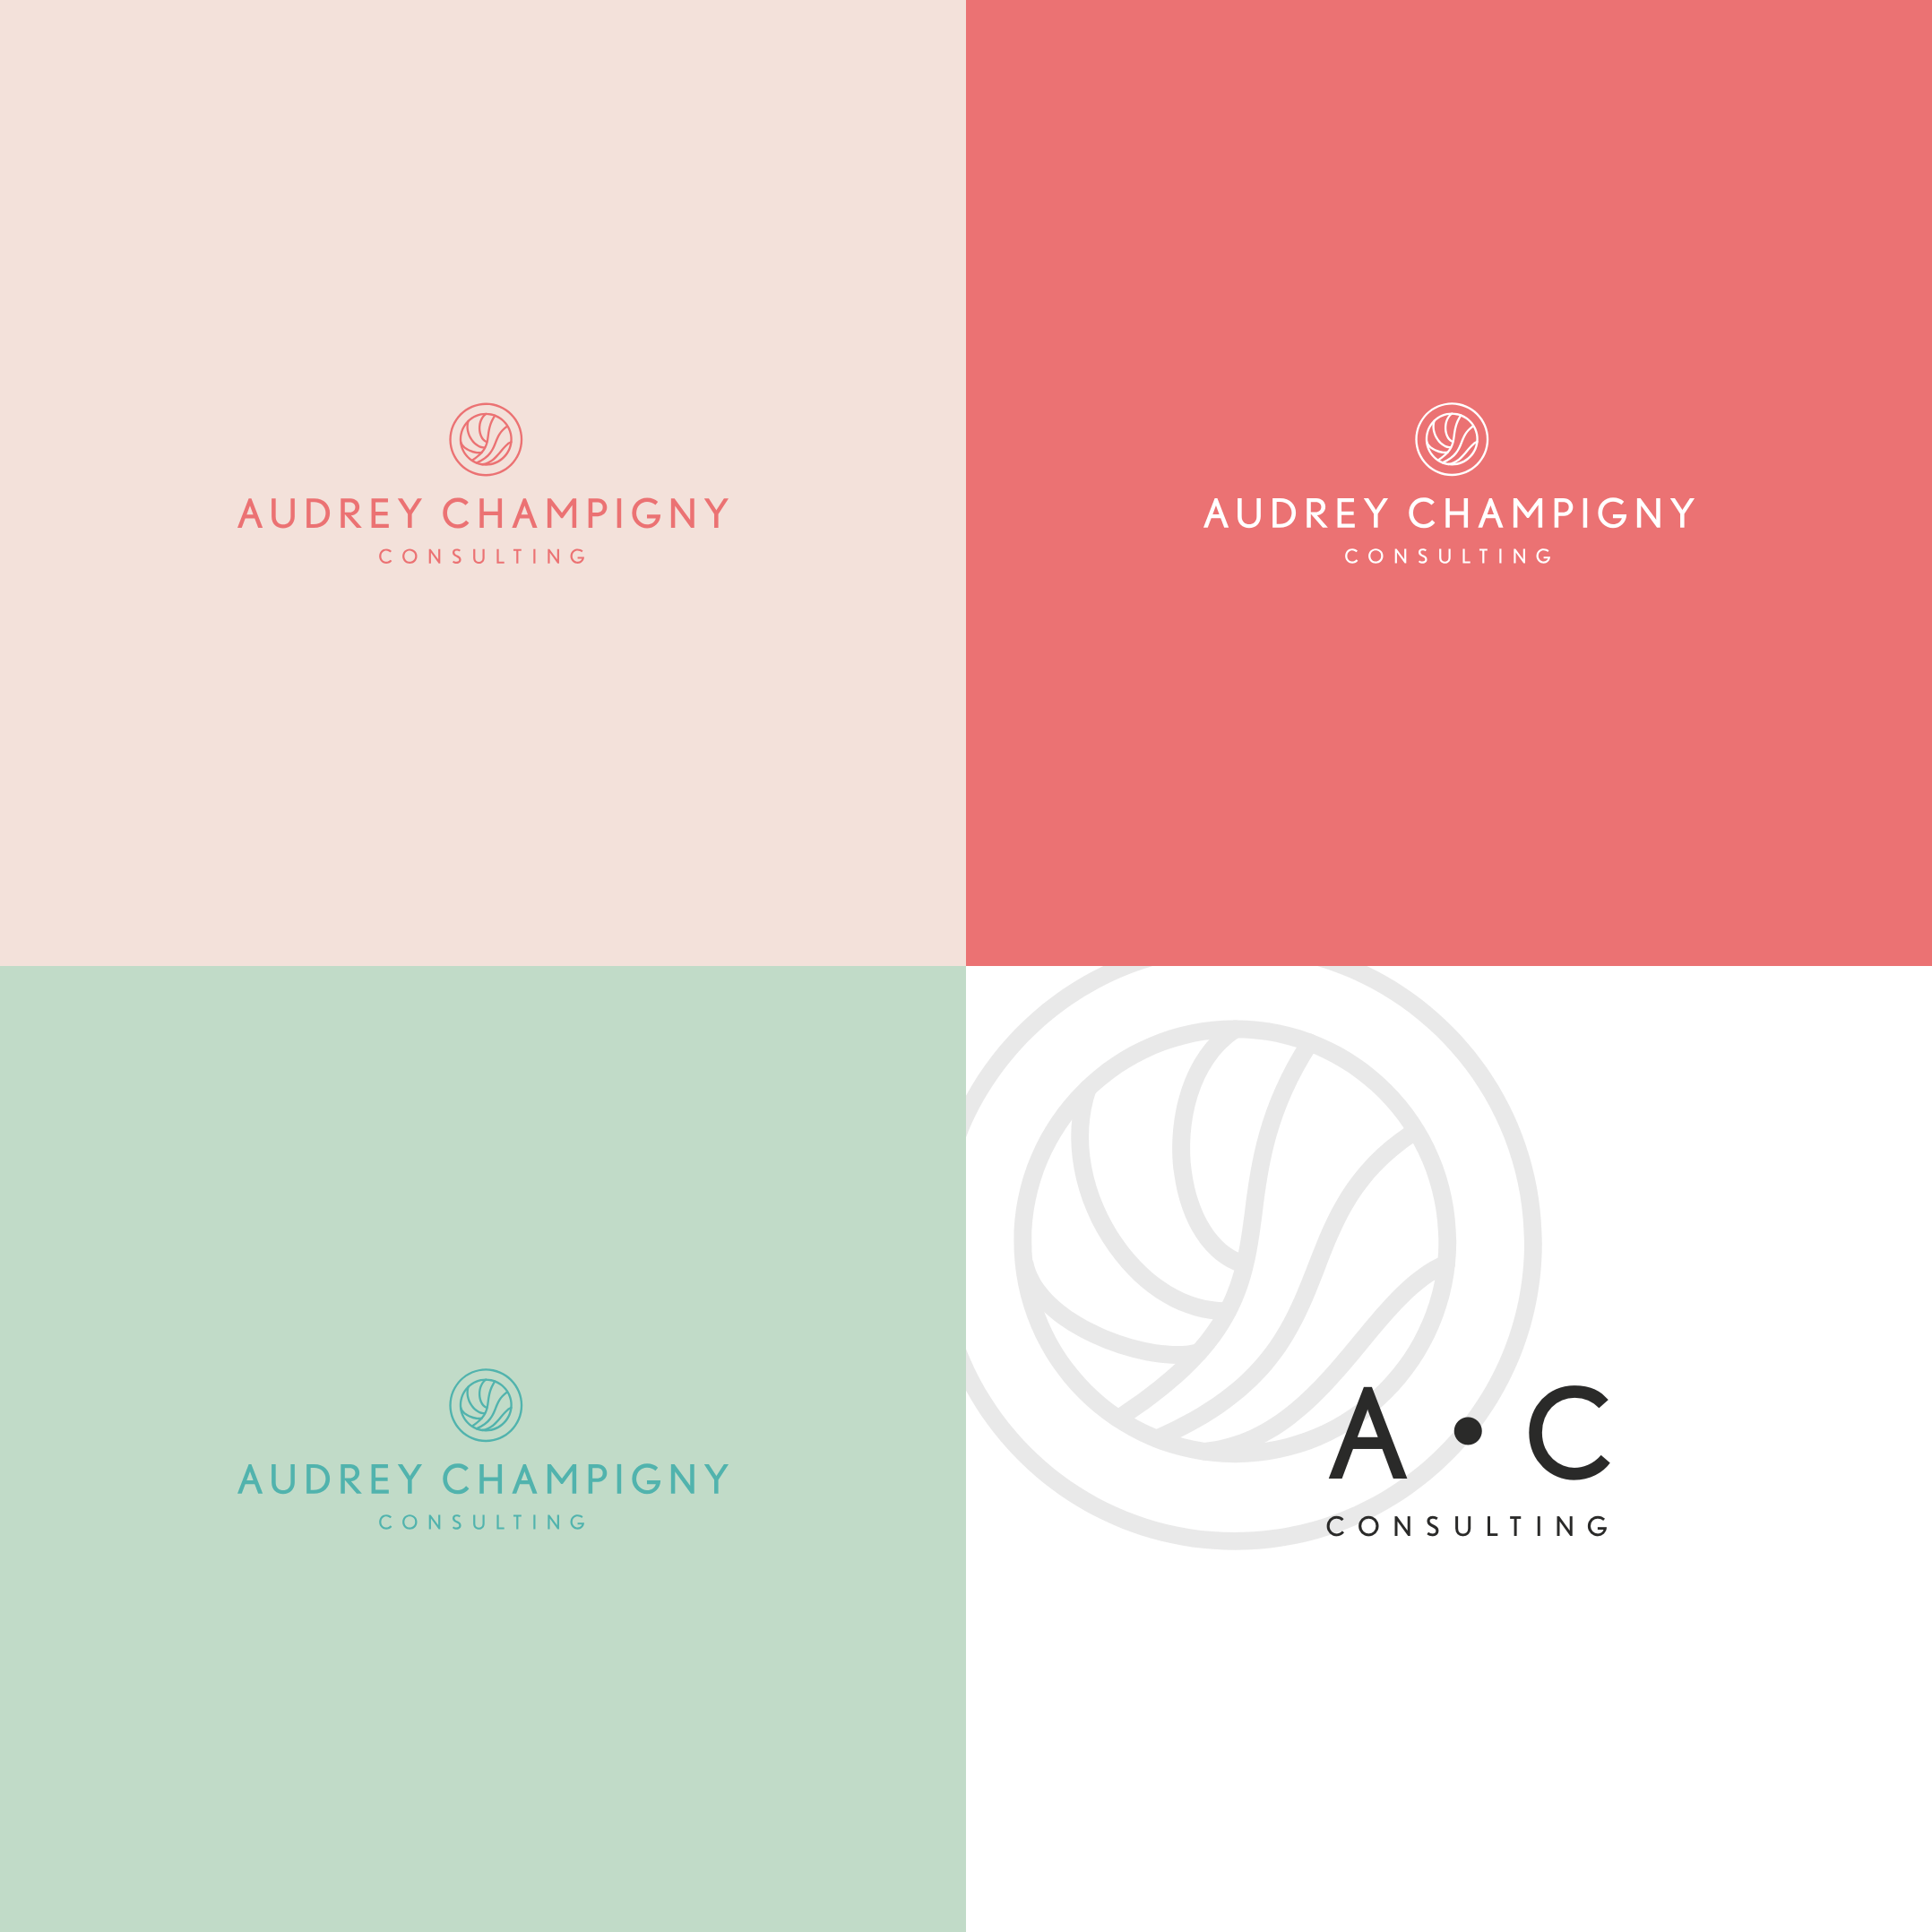 Les versions alternatives du logo Audrey Champigny Consulting